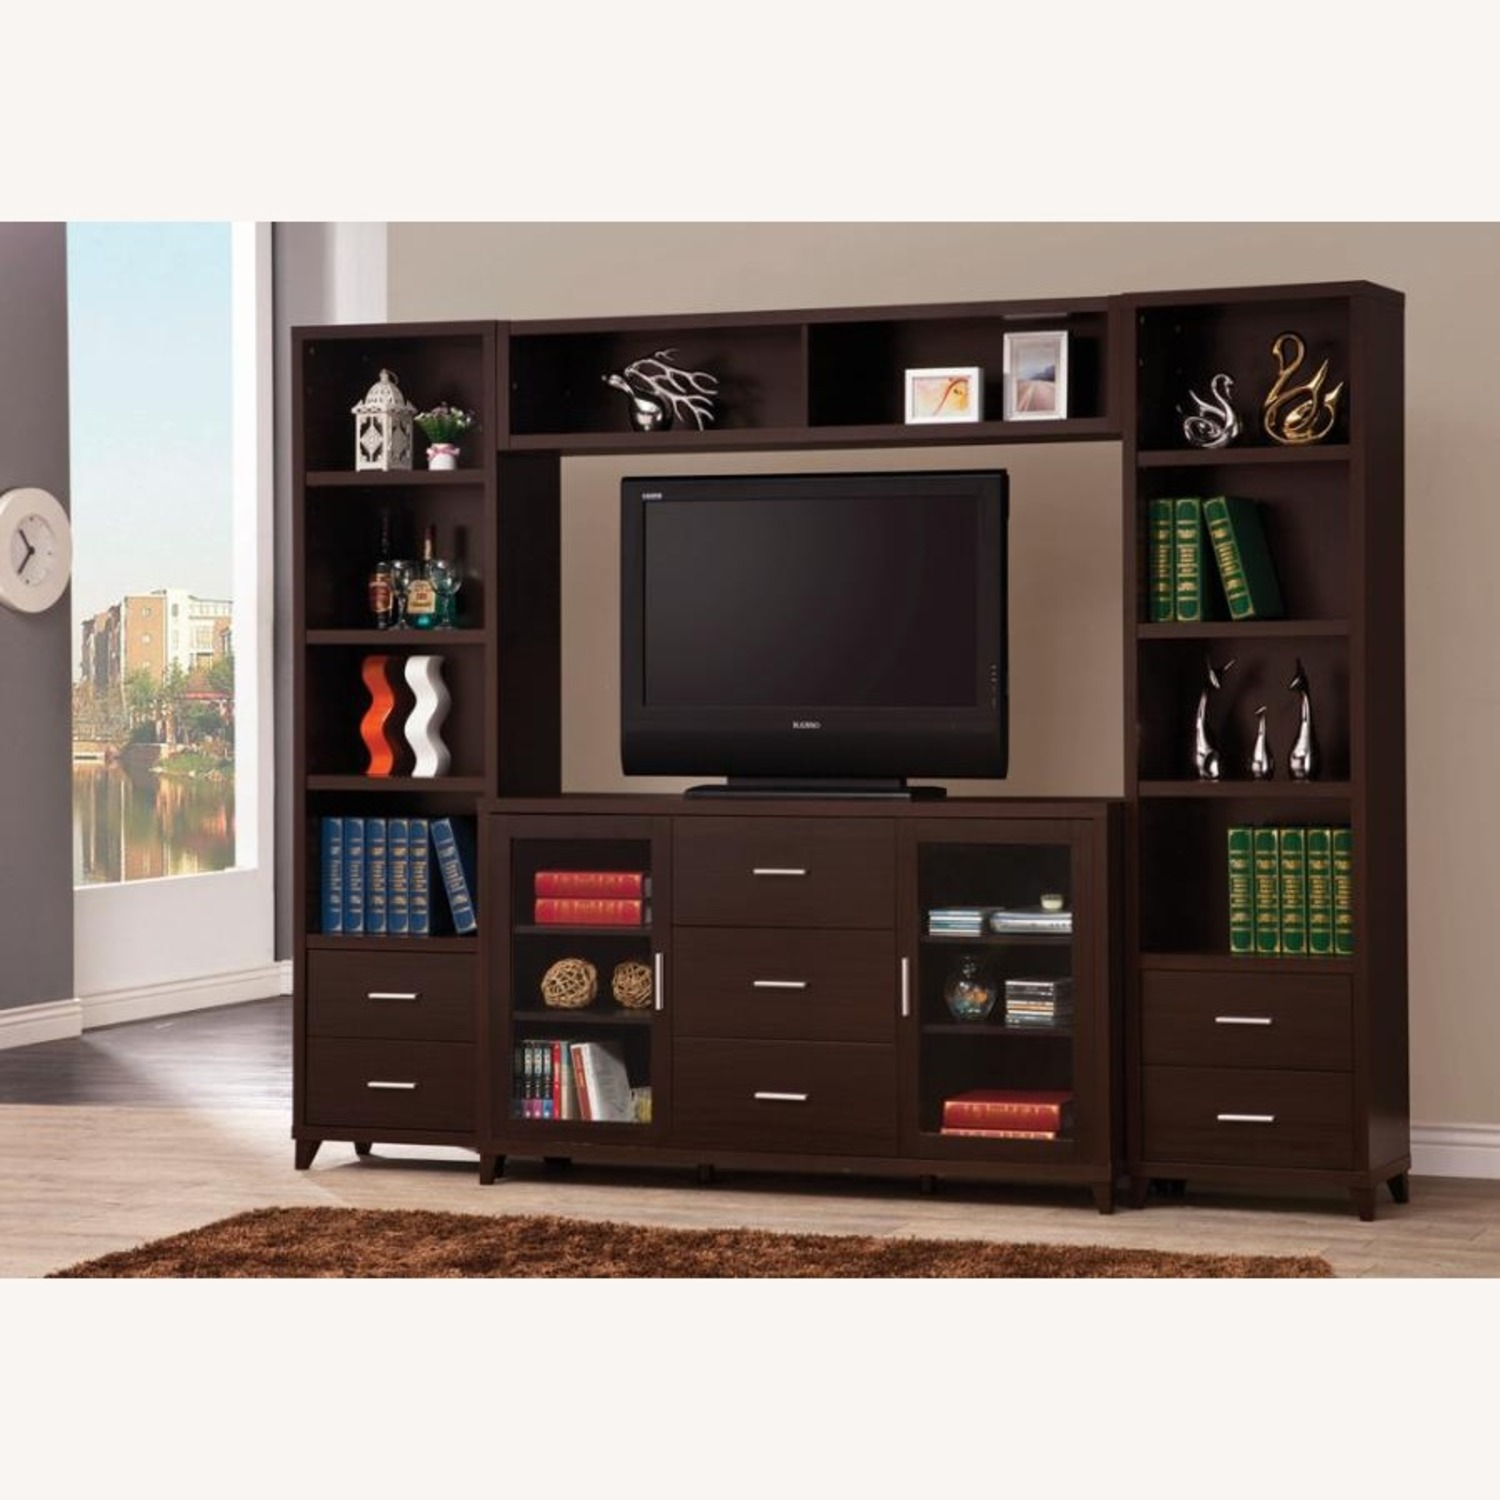 """60"""" TV Console In Cappuccino W/ Glass Framed Doors - image-3"""